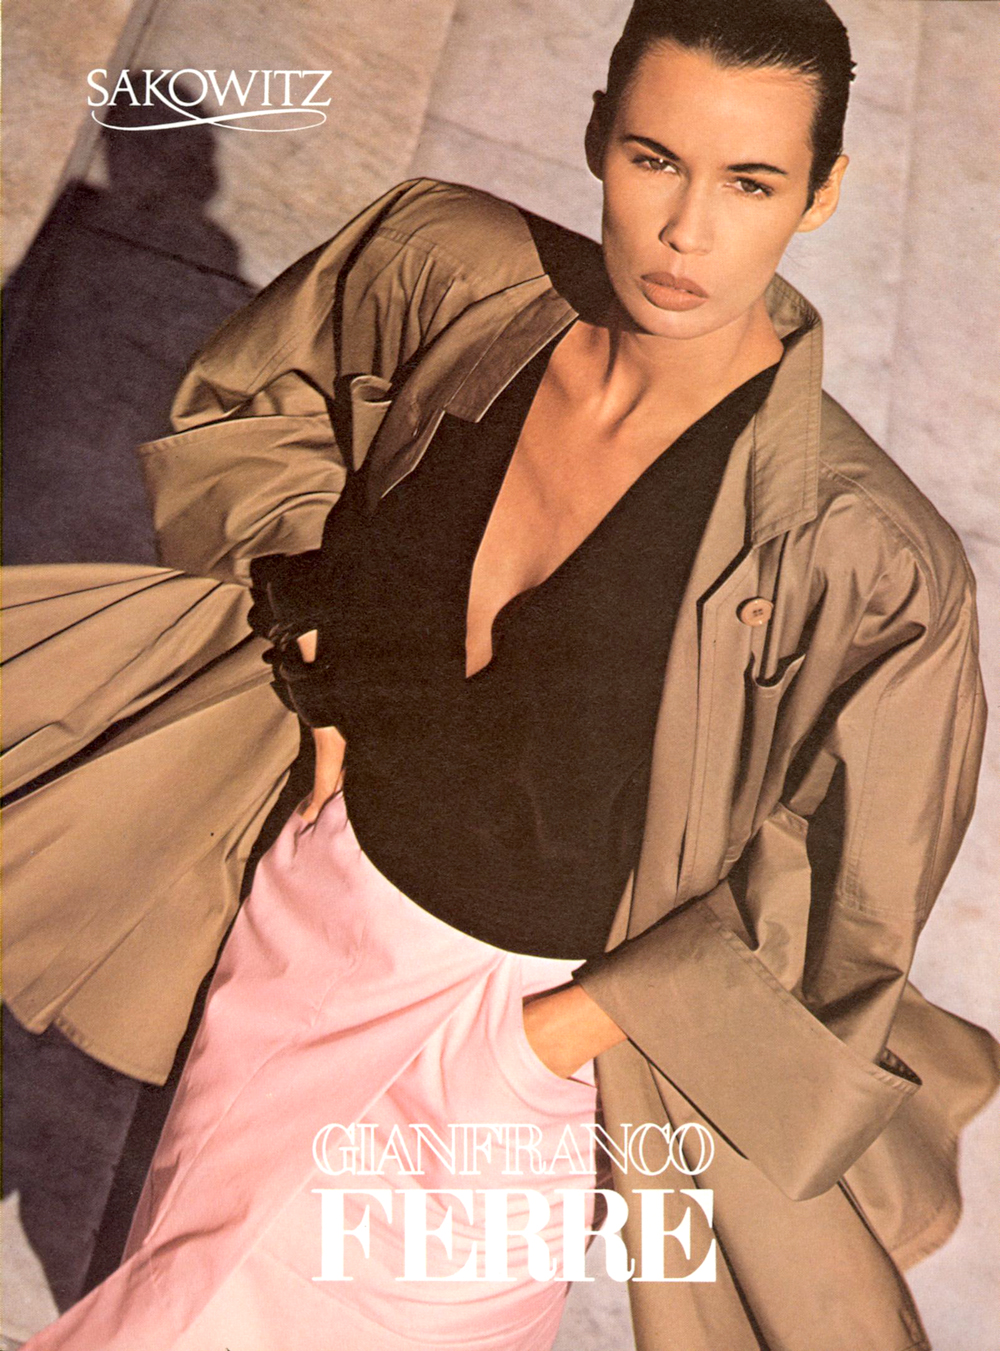 Gianfranco Ferre Spring/Summer 1986 campaign in Vogue US March 1986 via www.fashionedbylove.co.uk